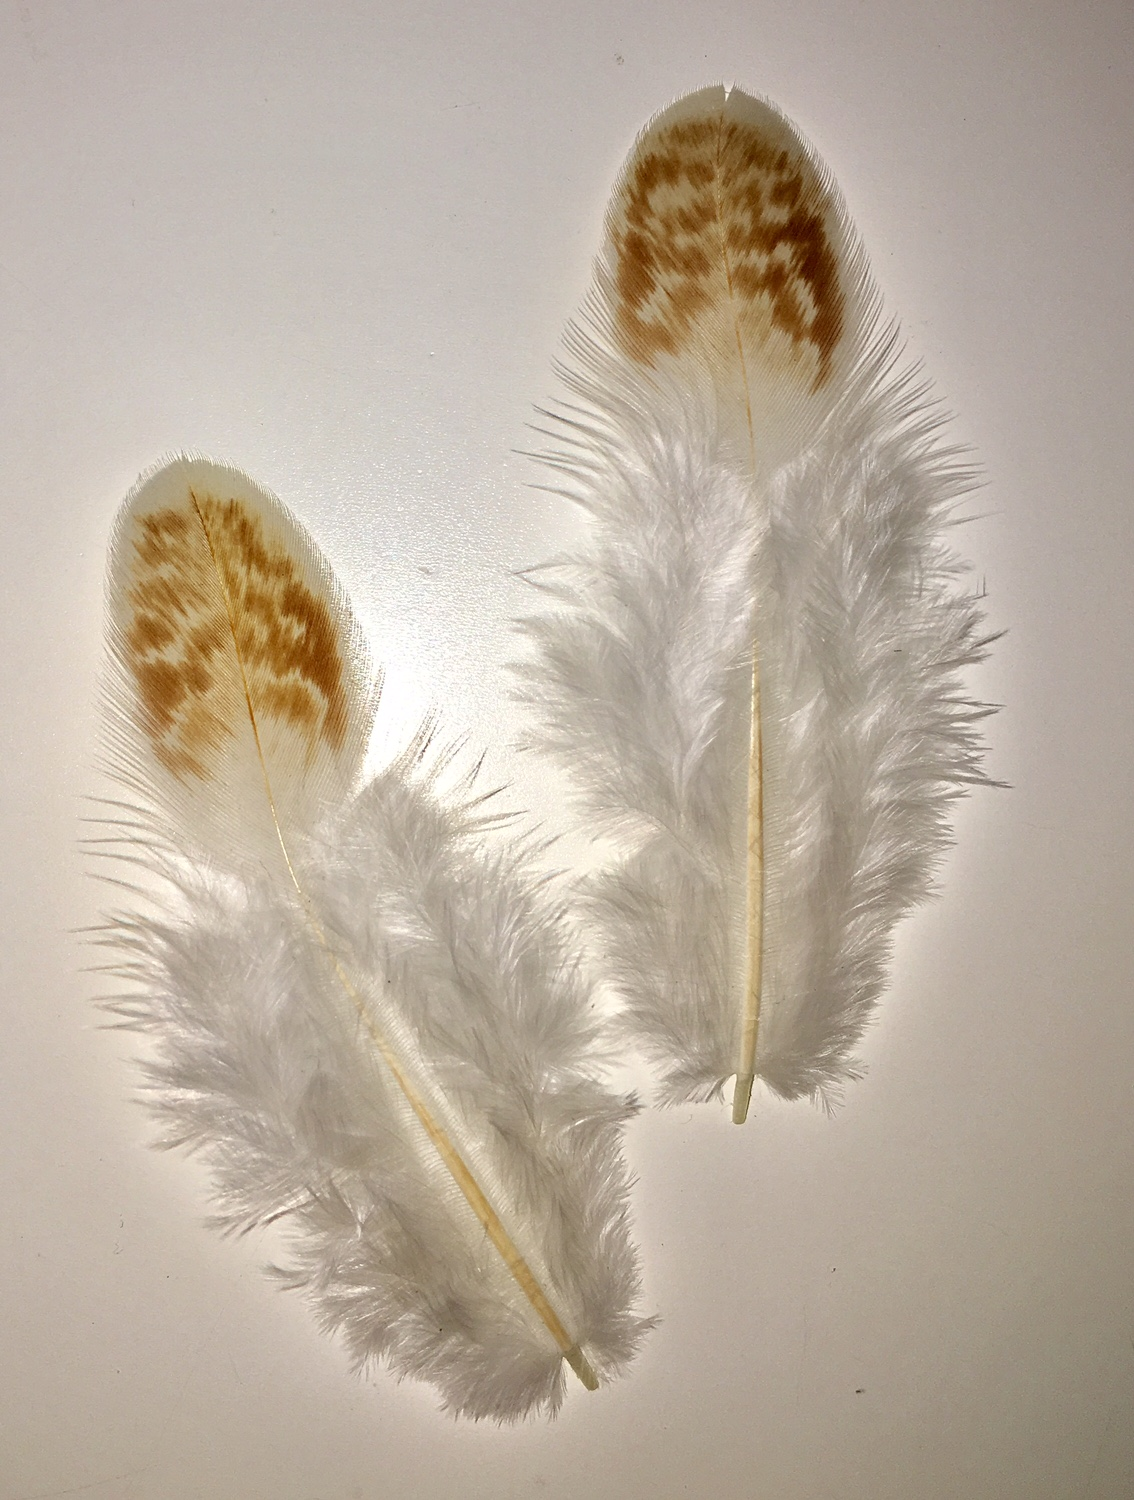 Red Cornish Chicken Feathers